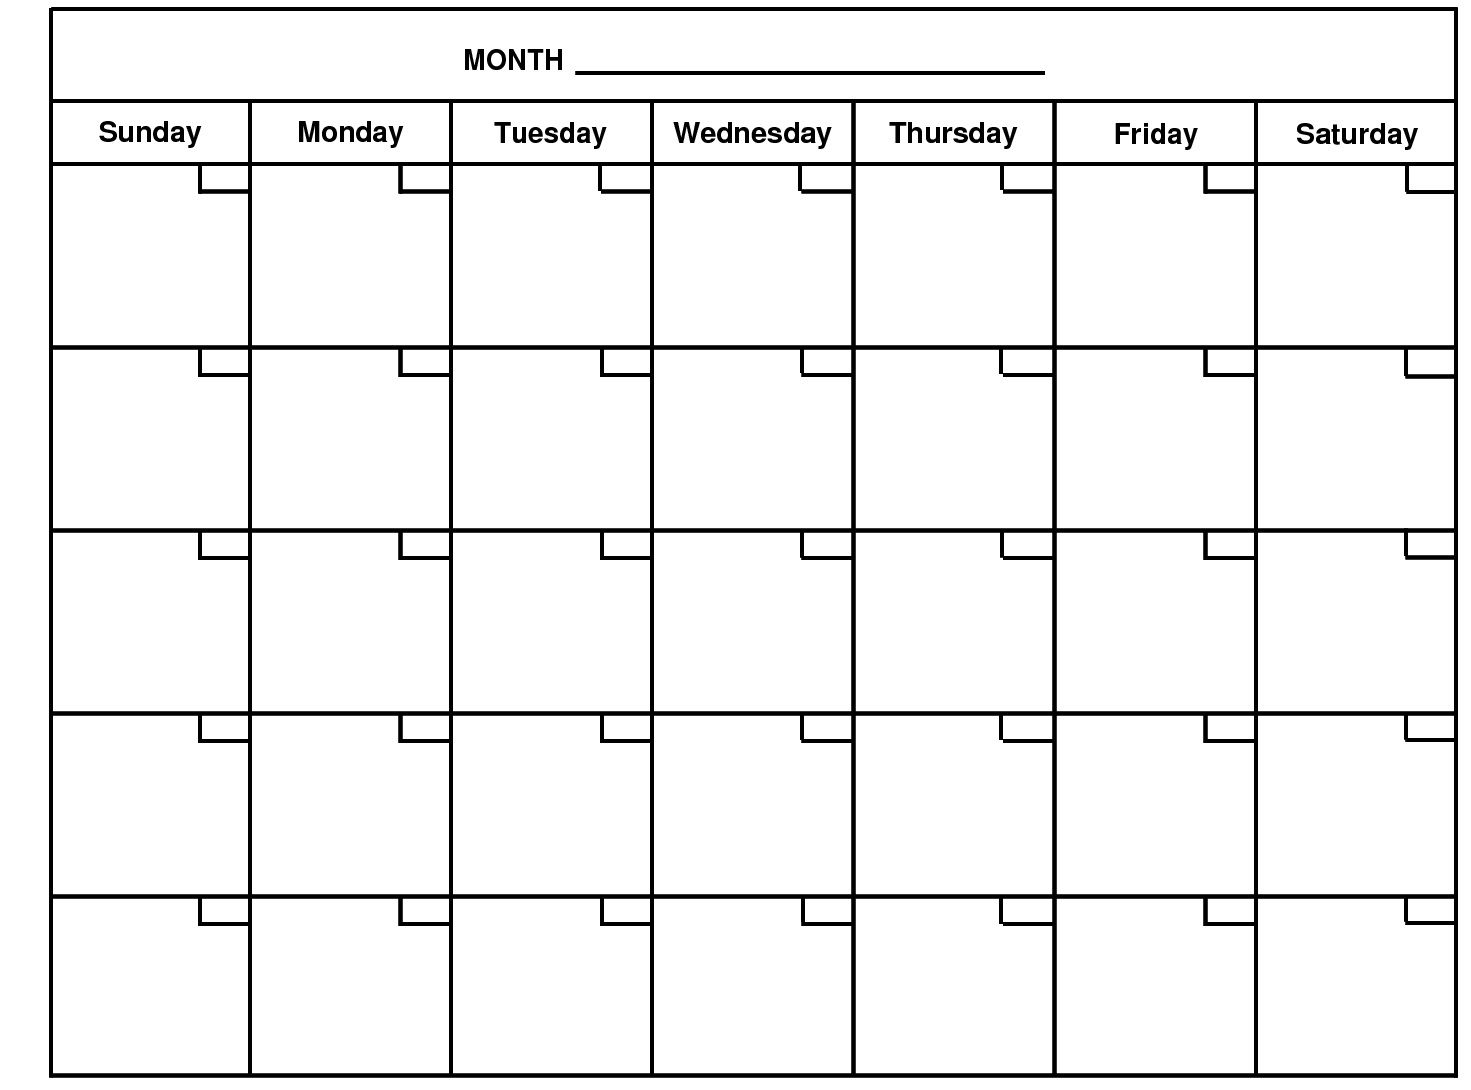 Calendar By Month : Month calendar monthly projects to try